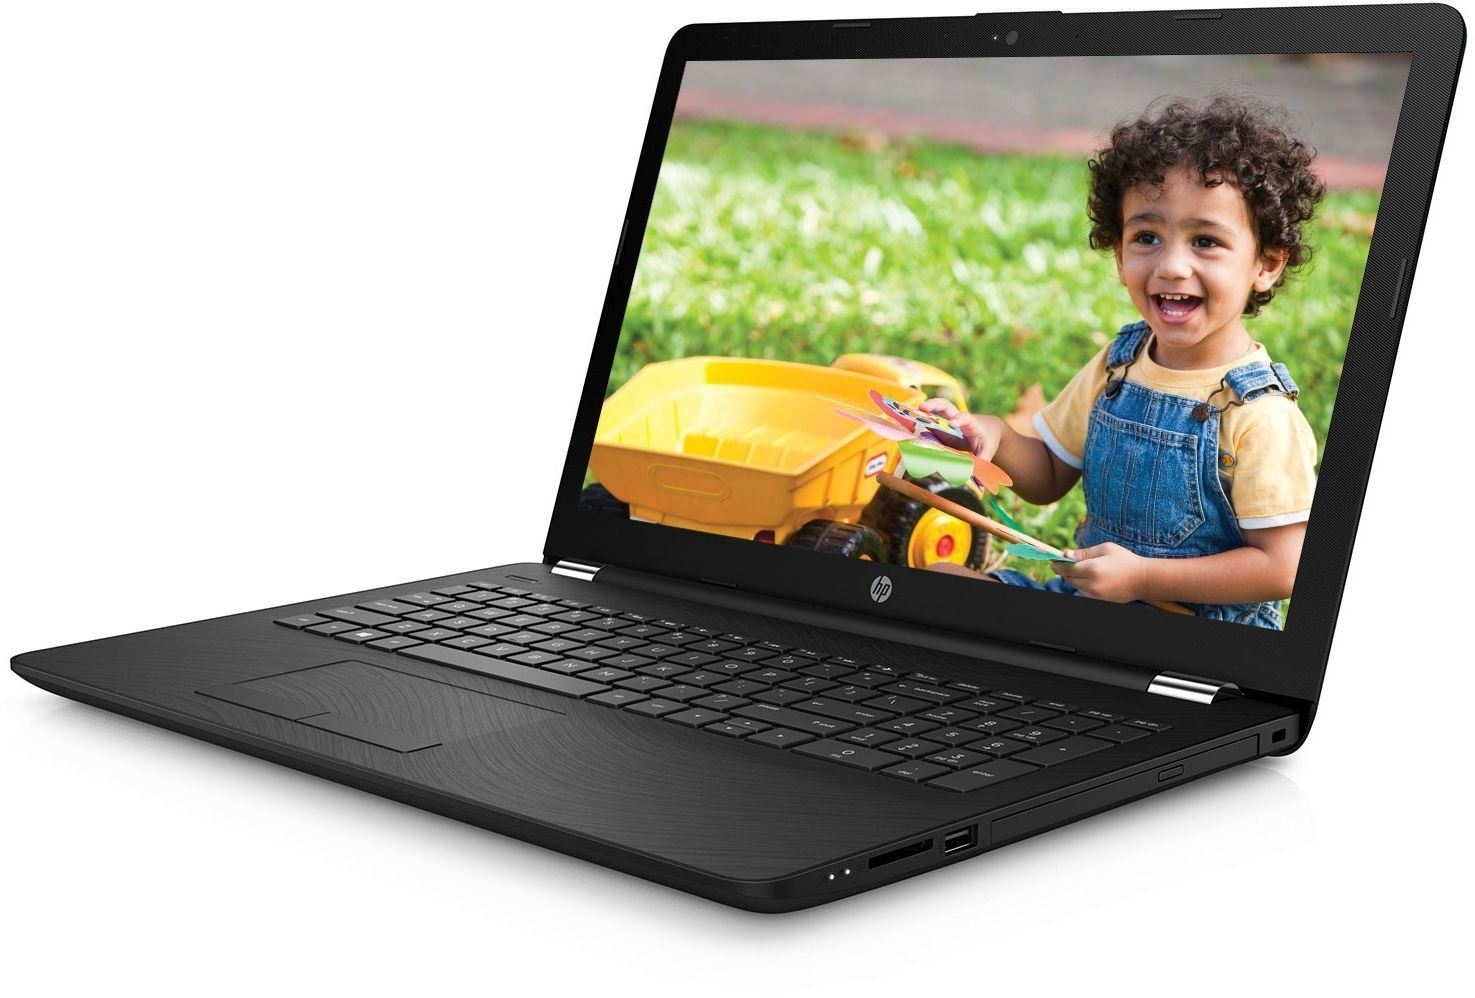 HP Notebook 15- bs146tu Intel (CoreTM i5-8250U 8th Gen, 1.6GHz /4GB DDR4 /1TB HDD / 39.62 cm(15.6) diagonal FHD SVA/ Windows 10 Home ) Black